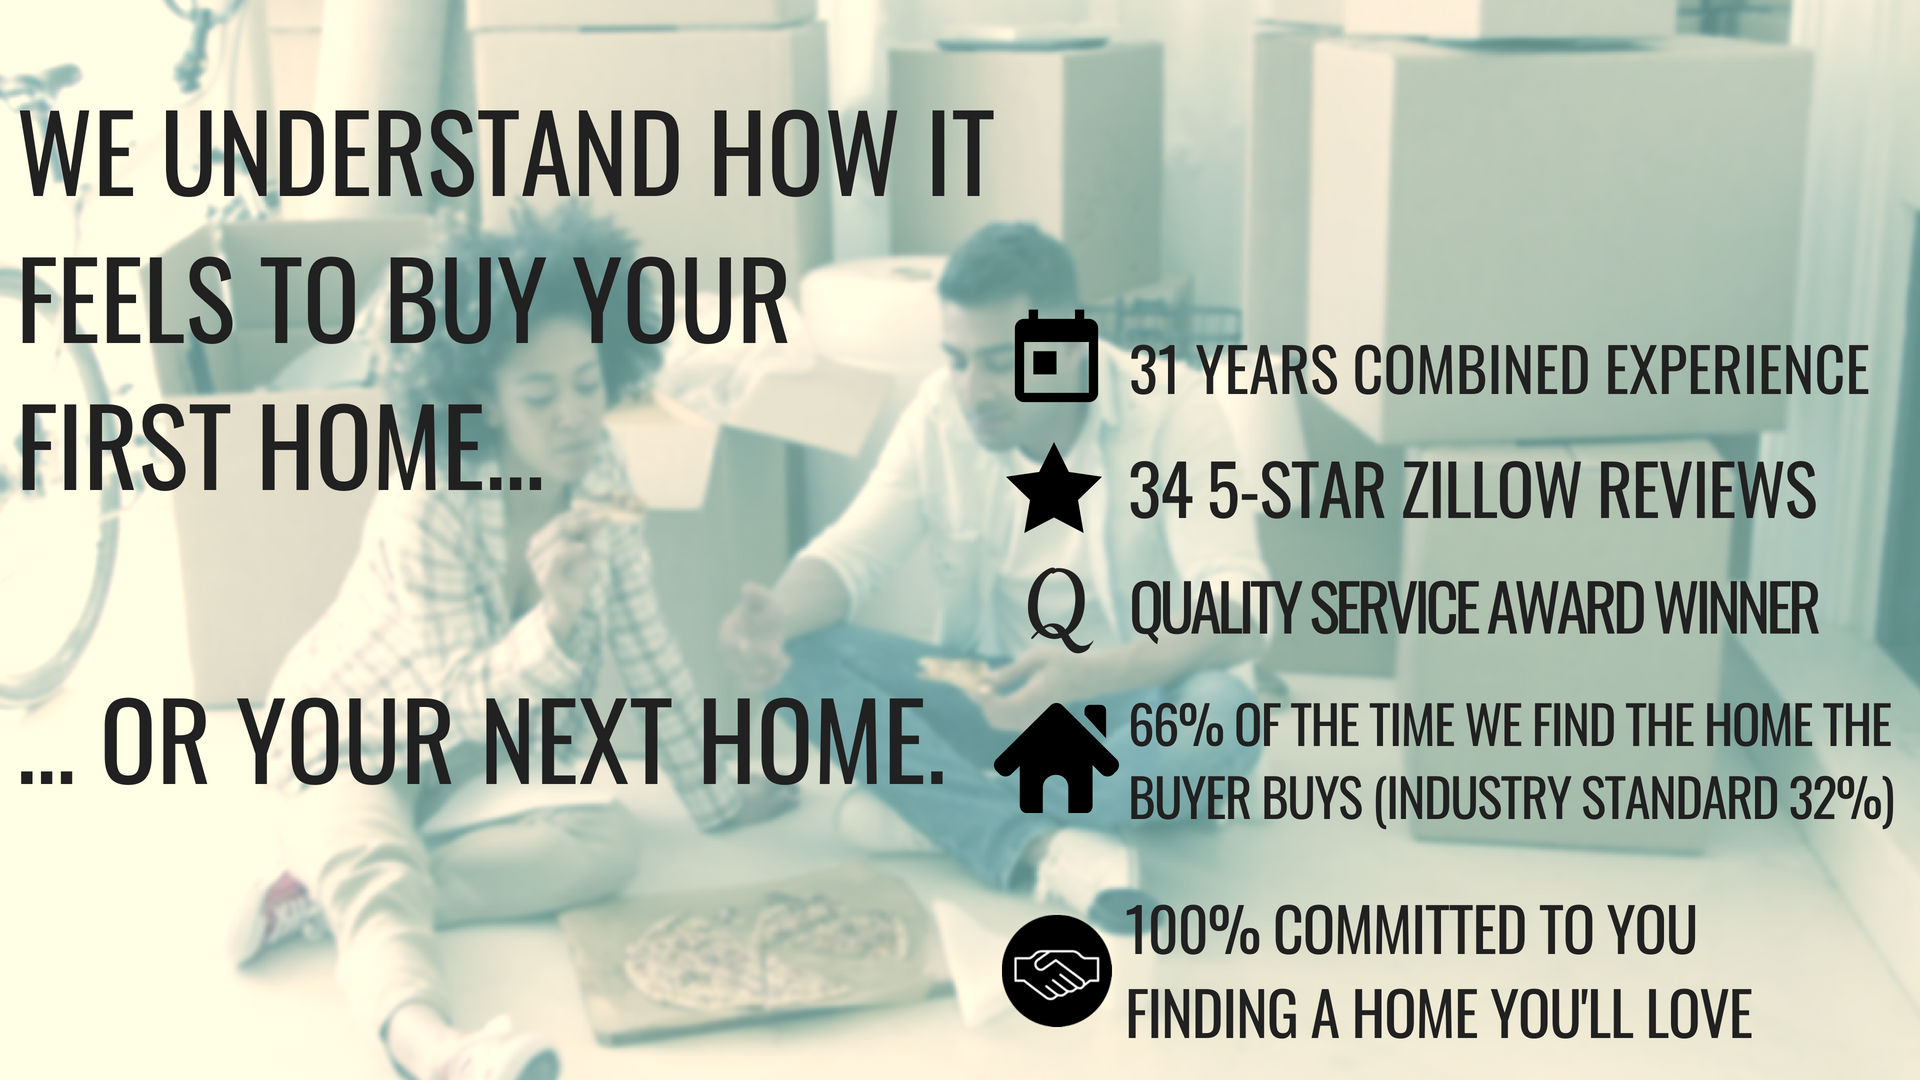 WE UNDERSTAND HOW IT FEELS TO BUY YOUR FIRST HOME...  ... OR YOUR NEXT HOME.